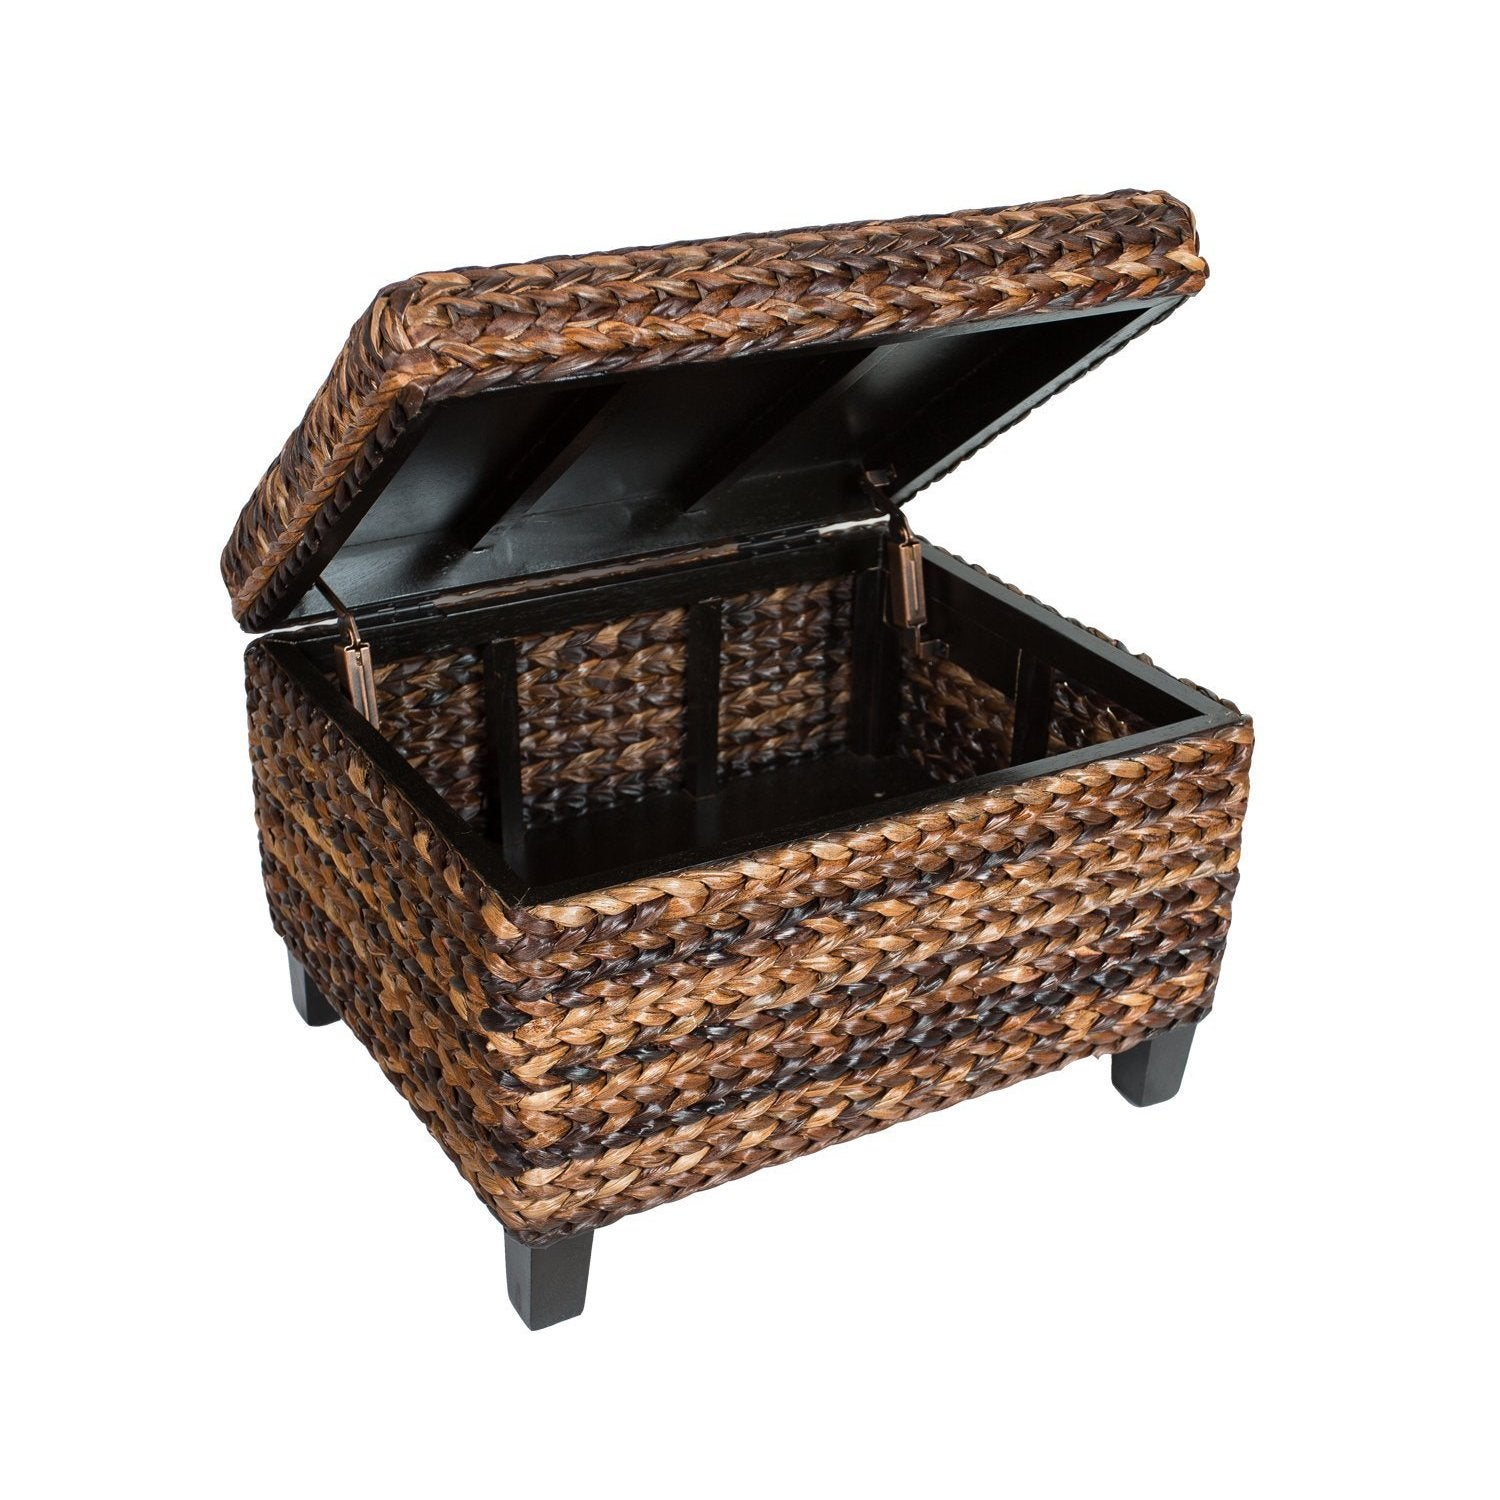 Shop BirdRock Home Espresso/Honey Seagrass Rattan Woven Storage Ottoman    Free Shipping Today   Overstock.com   11991969